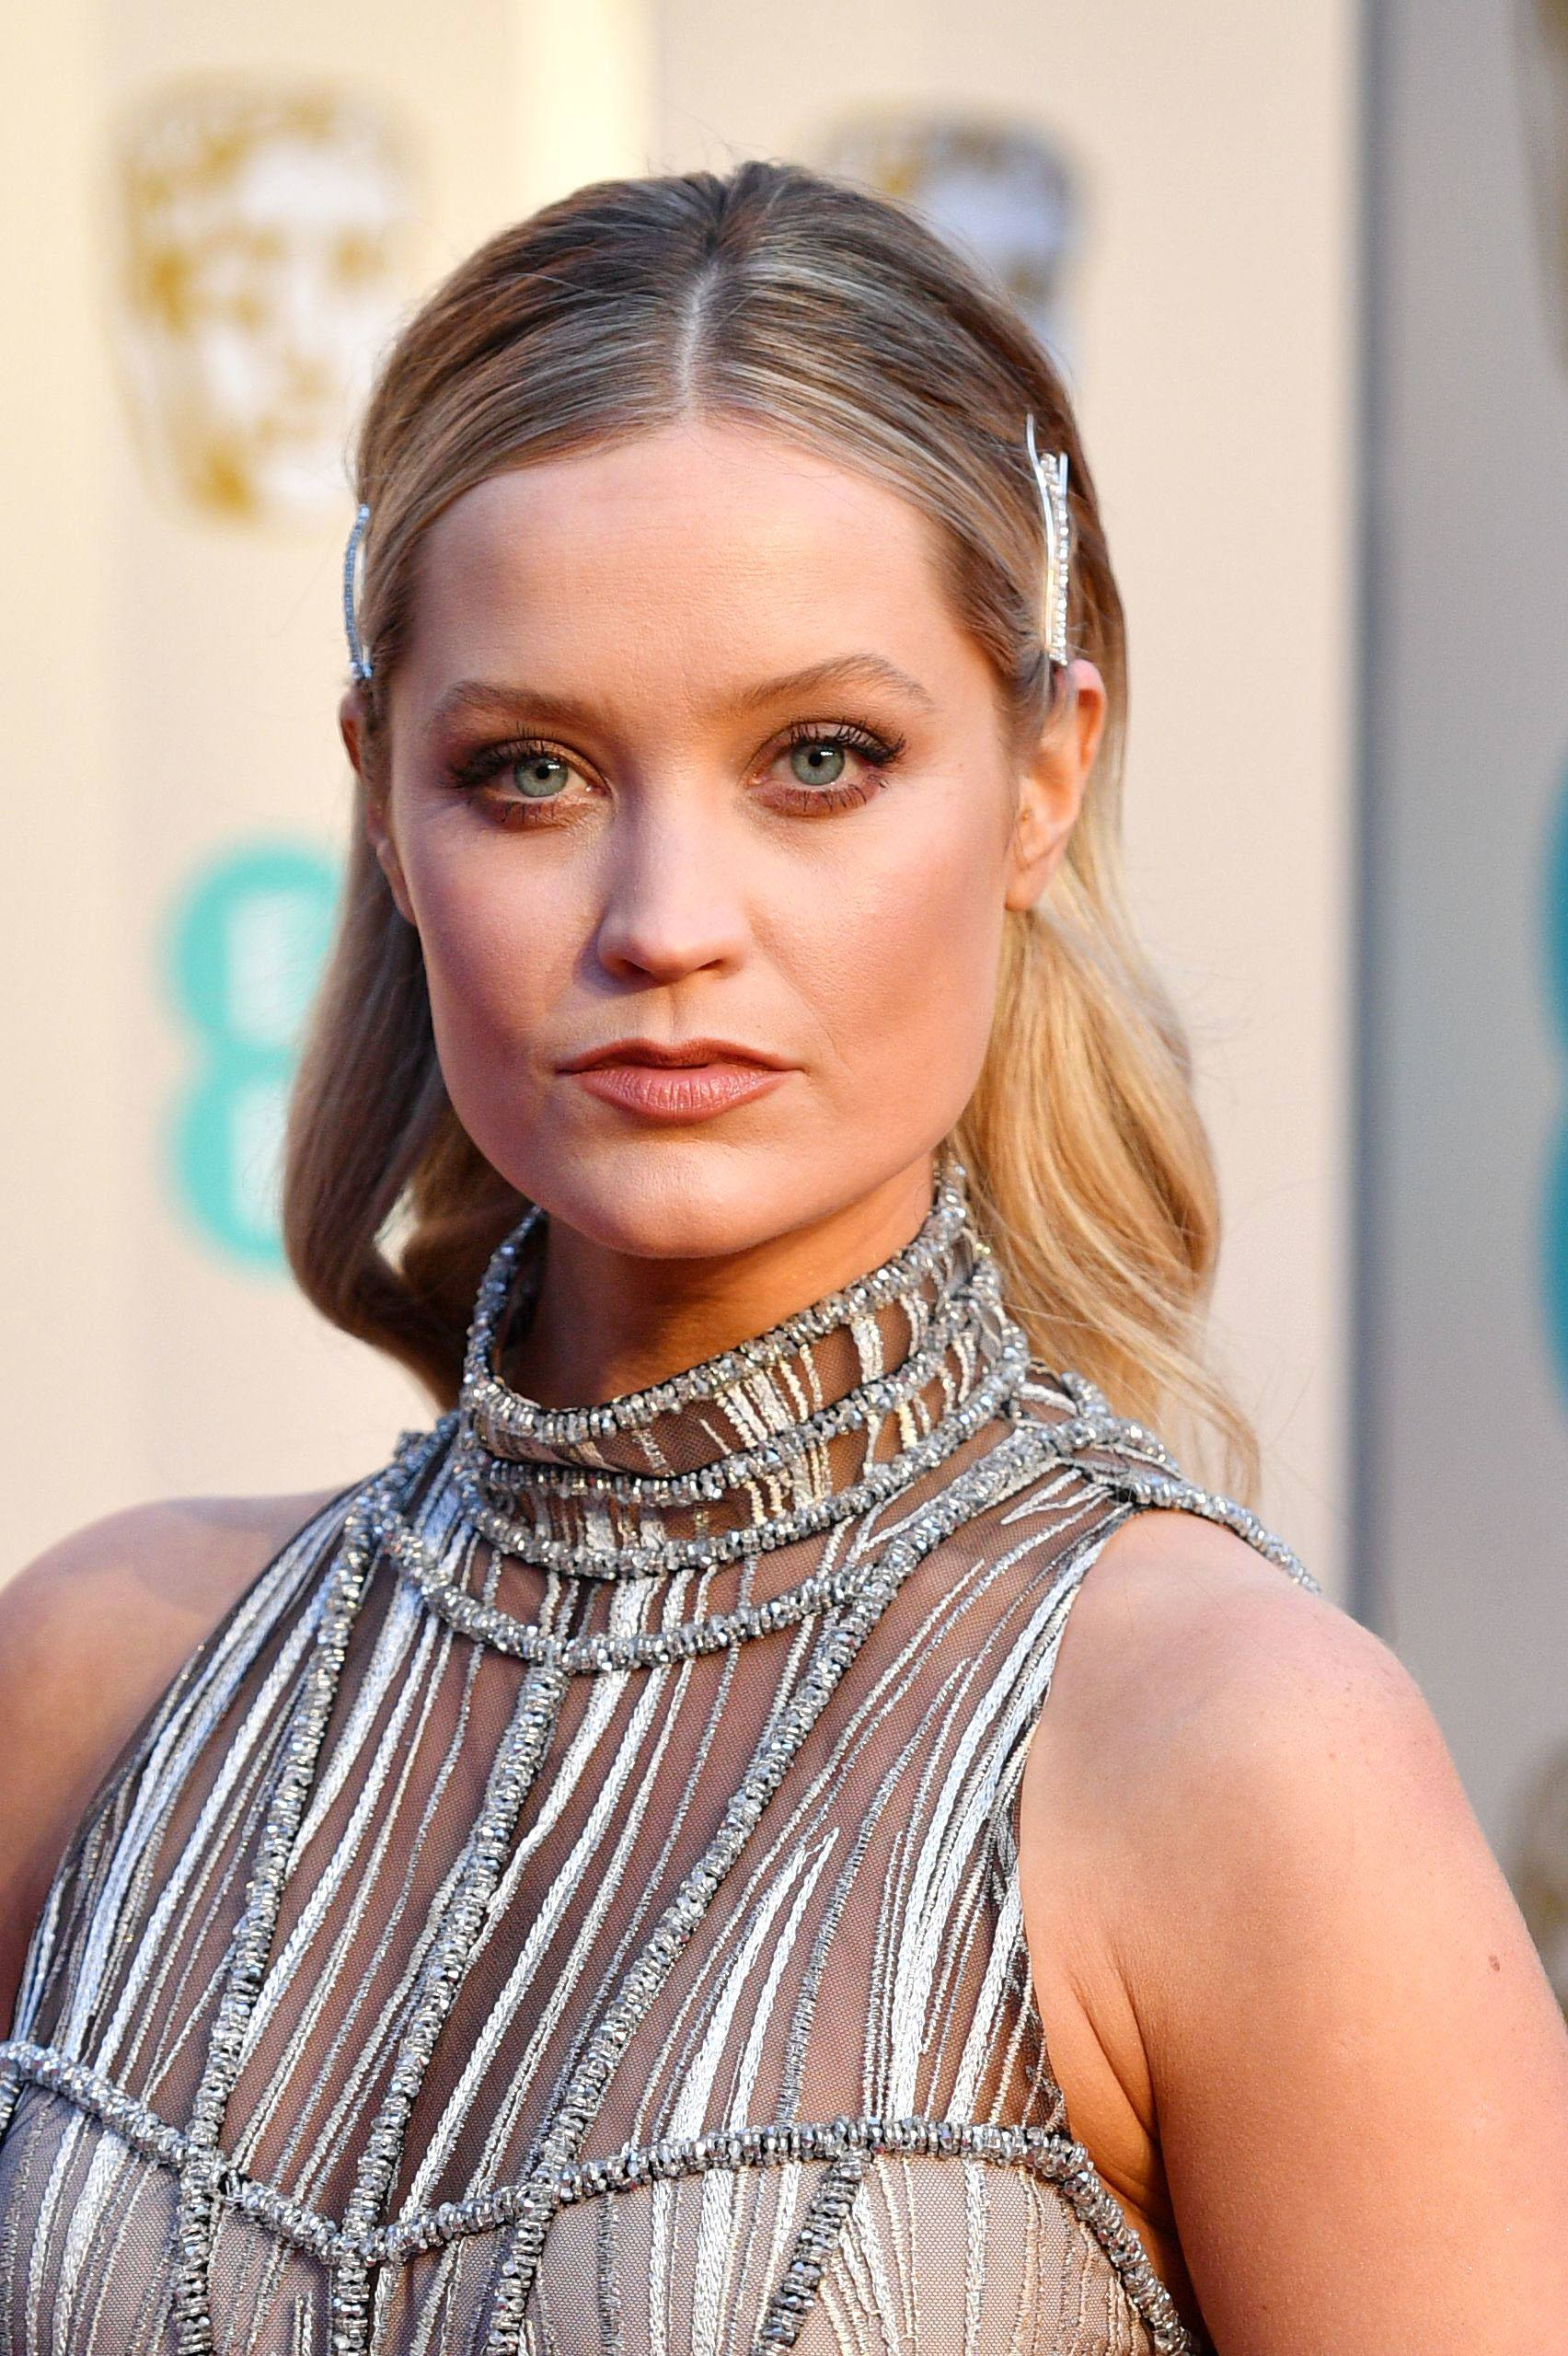 The best red carpet hairstyles (2019 update) | All Things ...